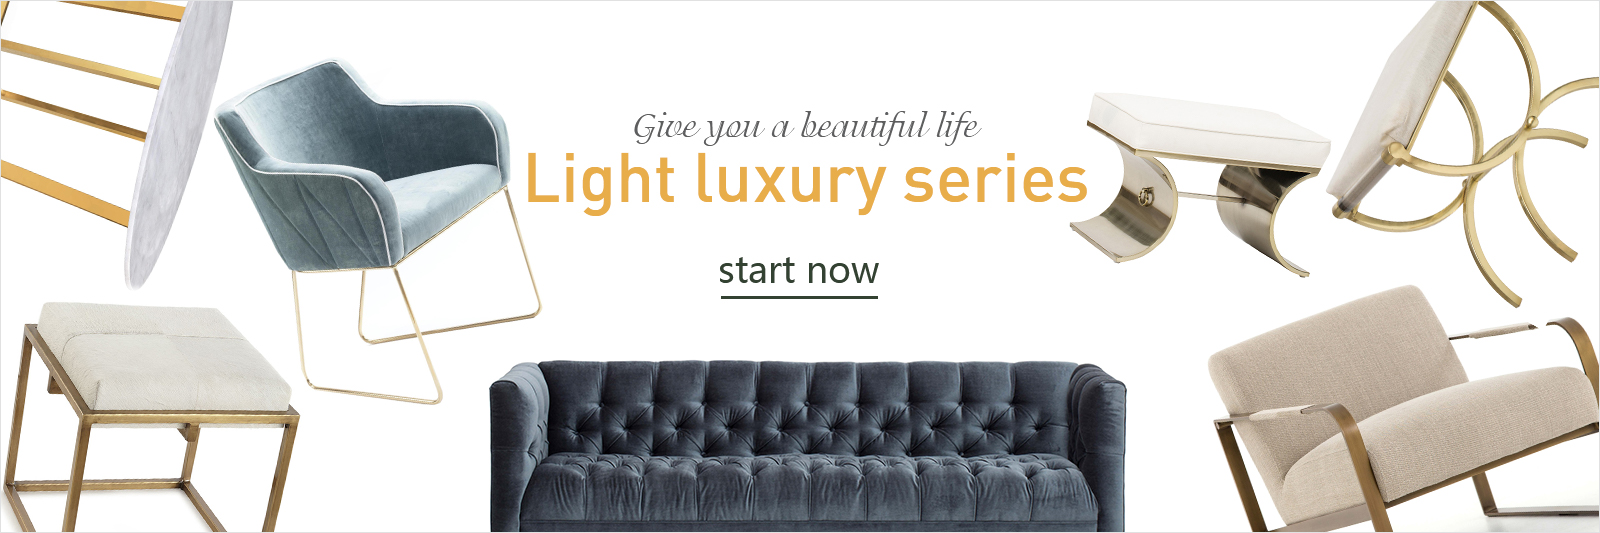 Light luxury series